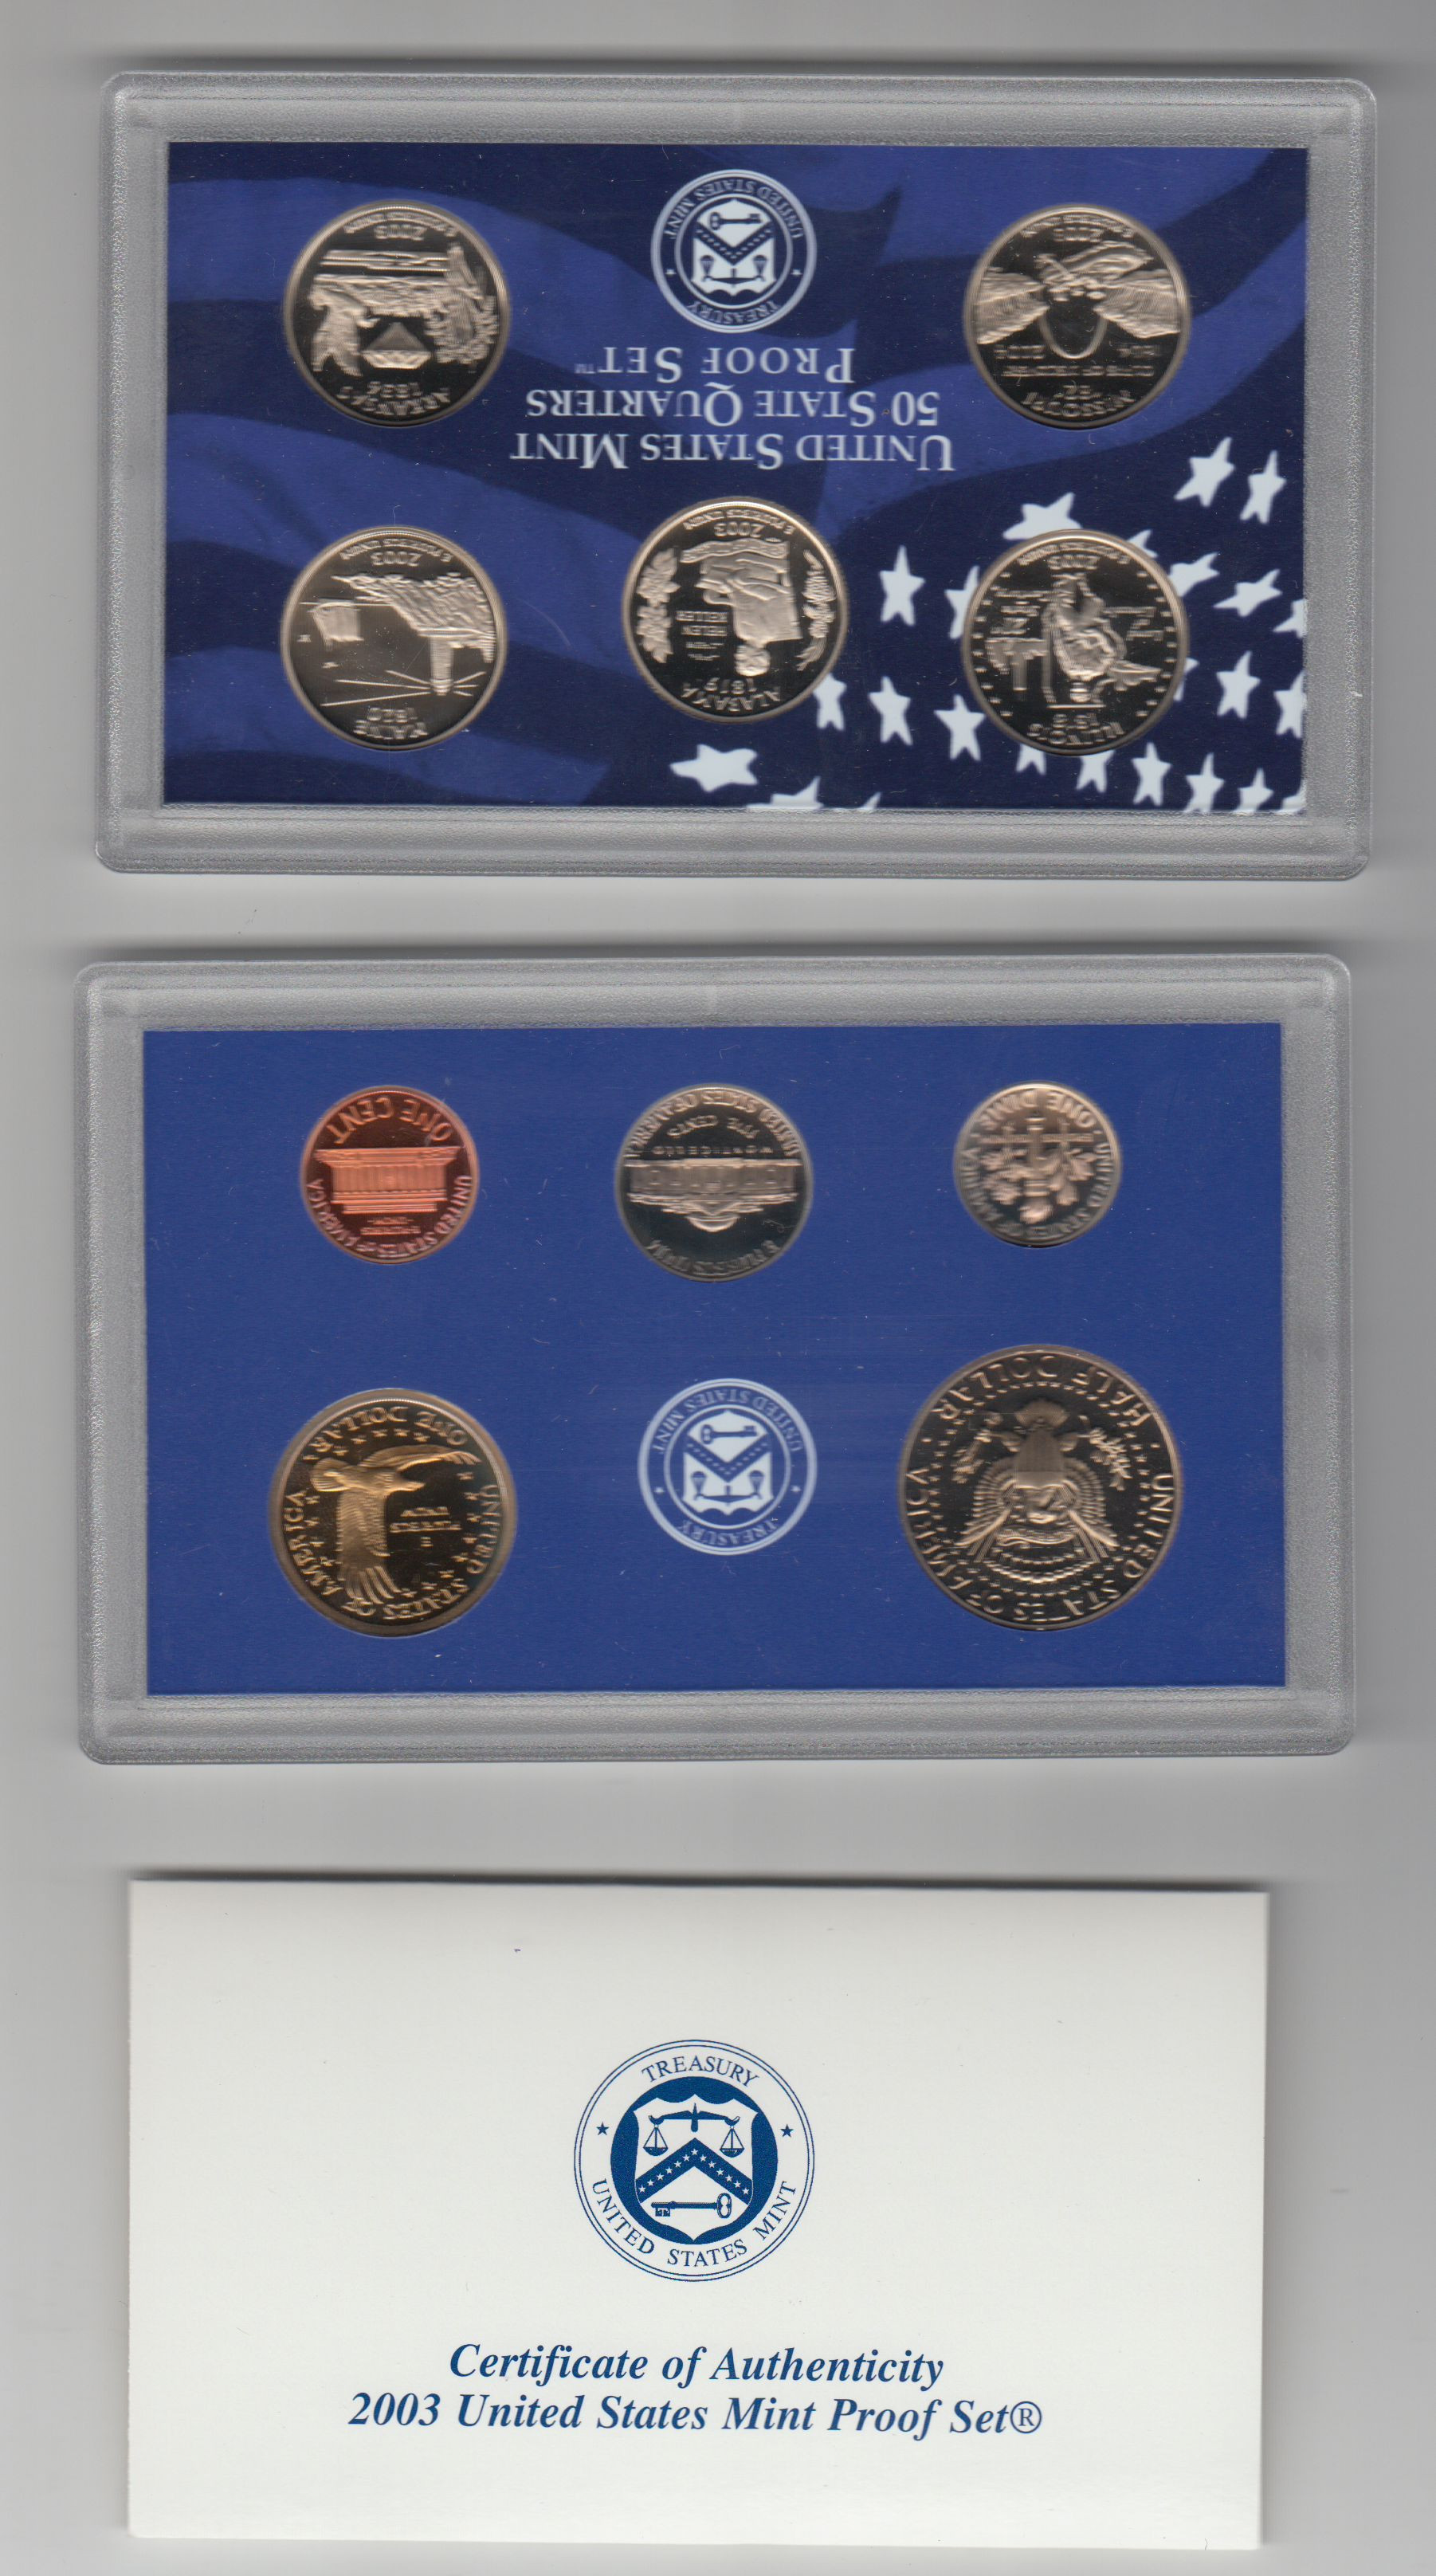 Lovely Value Of Usa 10 Coins 50 State Quarters Proof Set Us Mint State Quarter Set Value Of Luxury United States Mint Proof Sets Versus Uncirculated Sets State Quarter Set Value